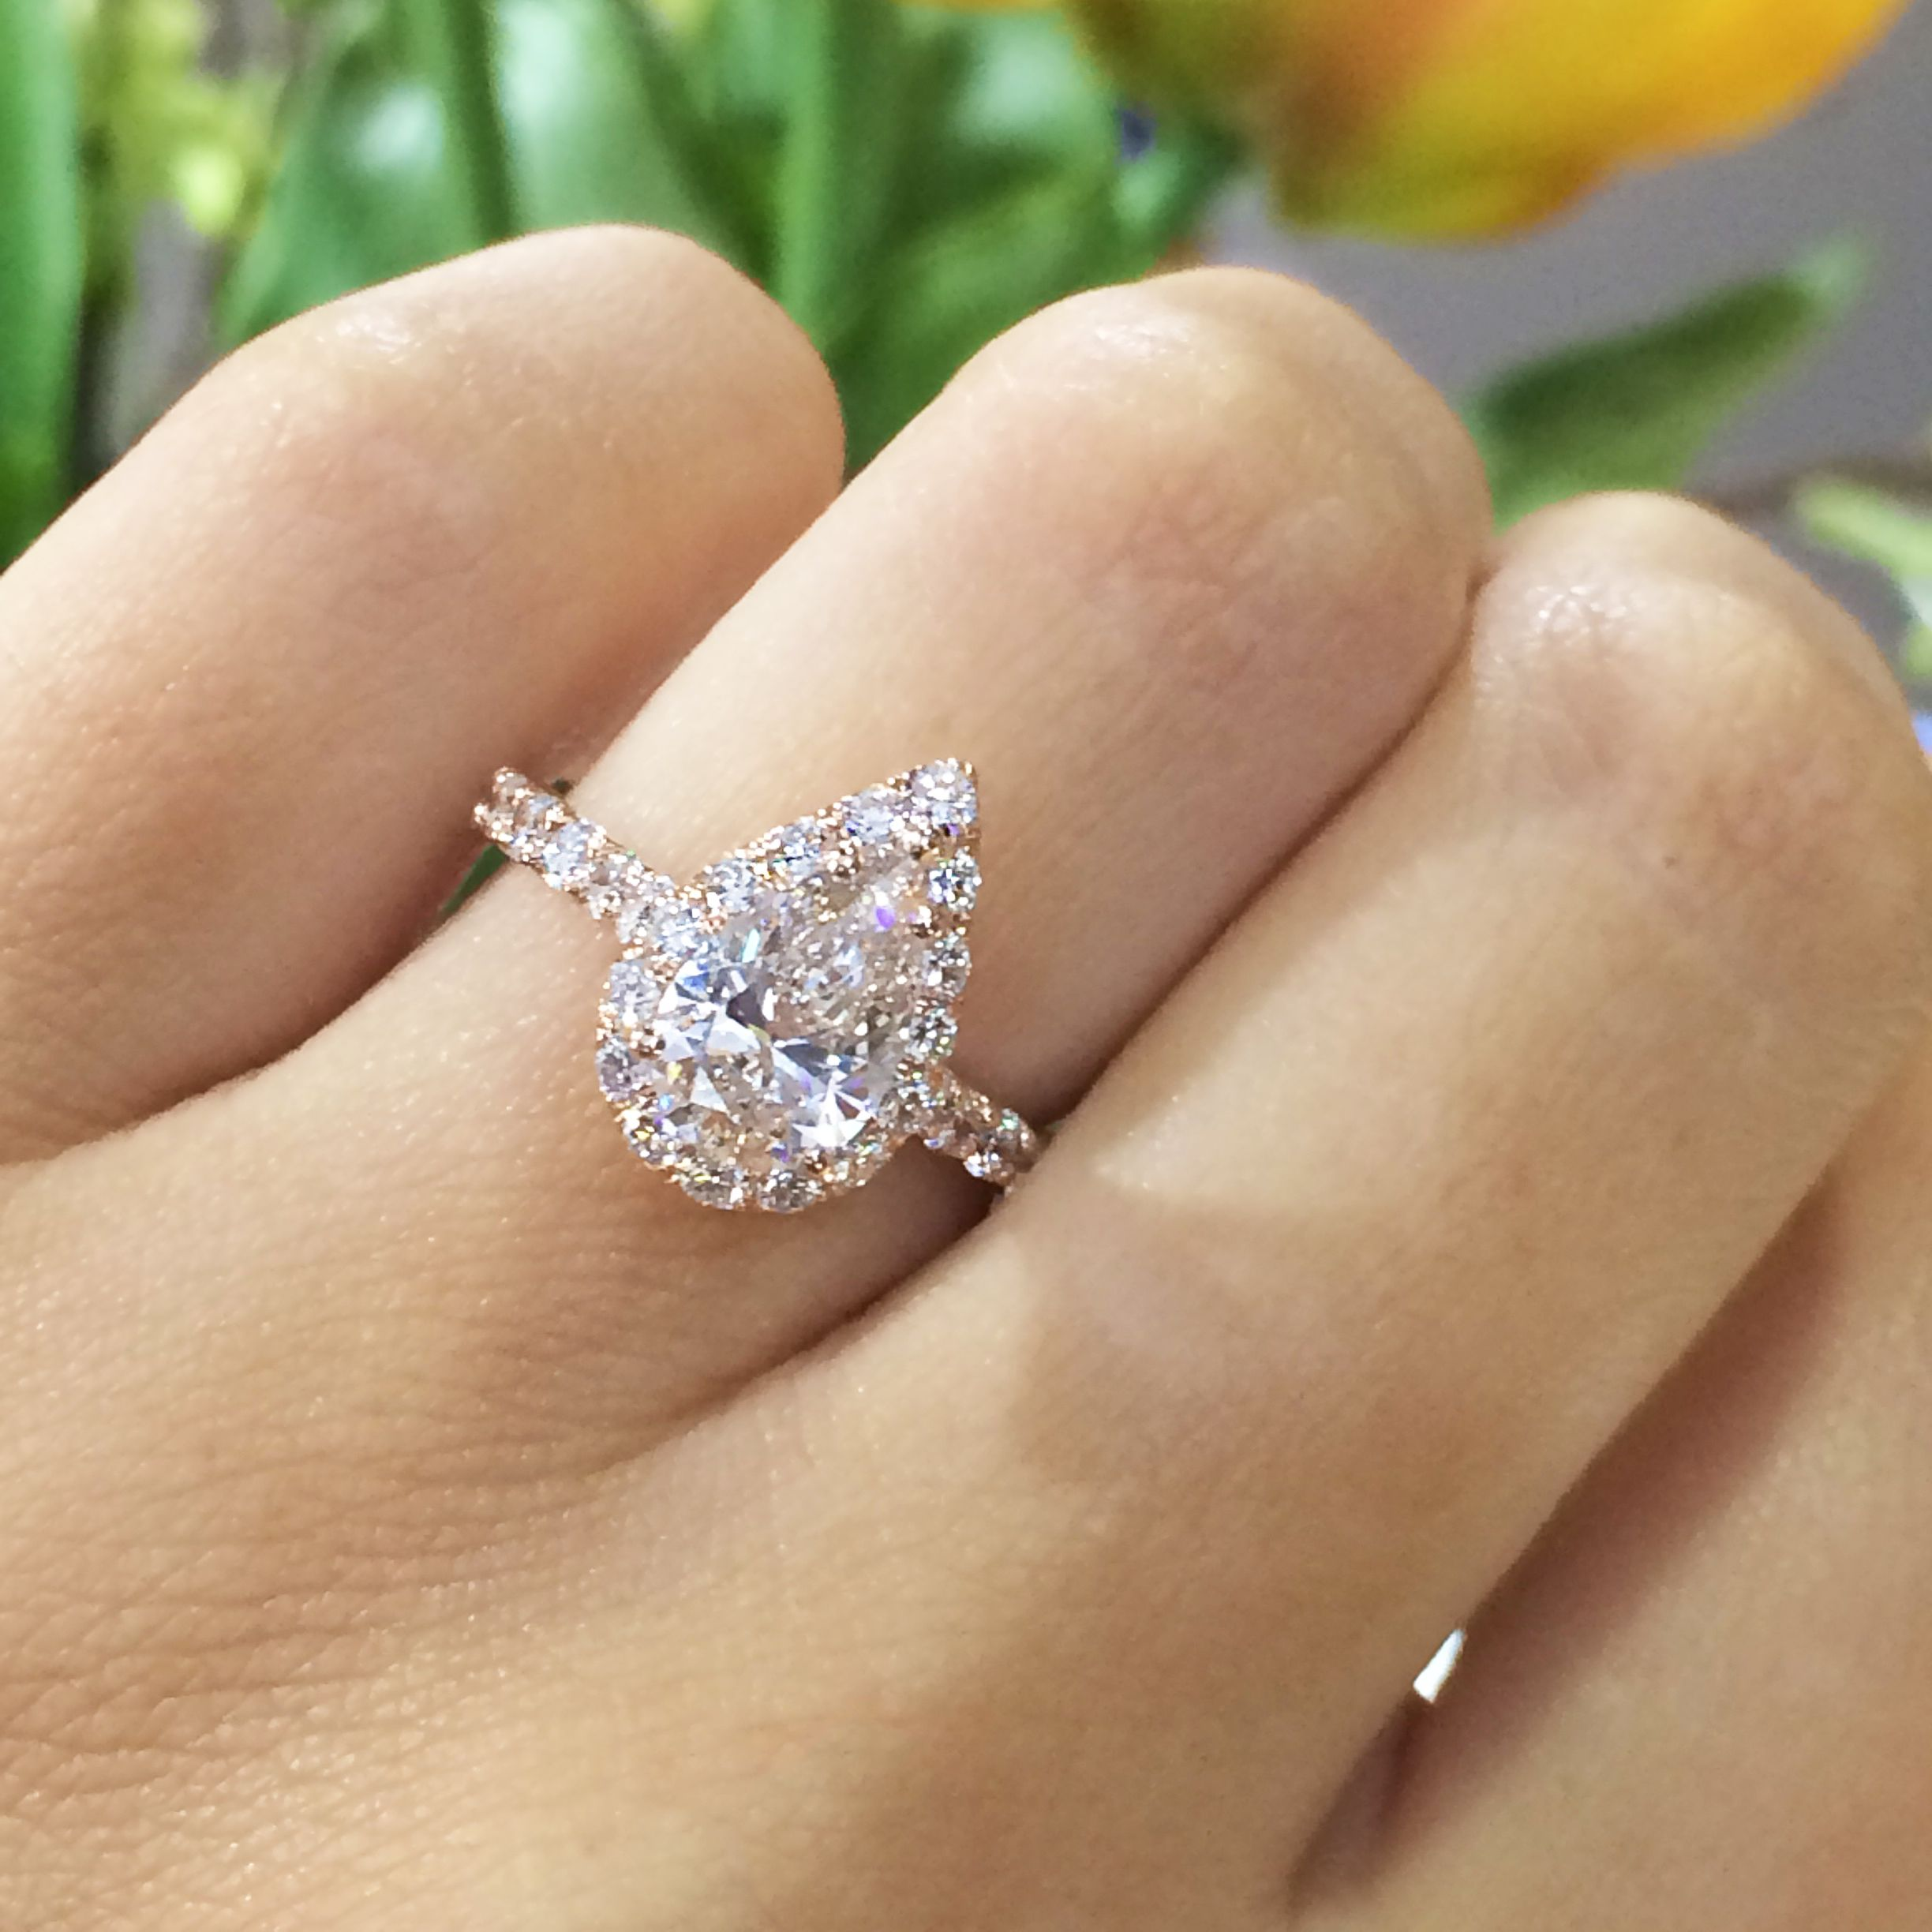 diamond side media pear ring rings the matching with eye shaped engagement band